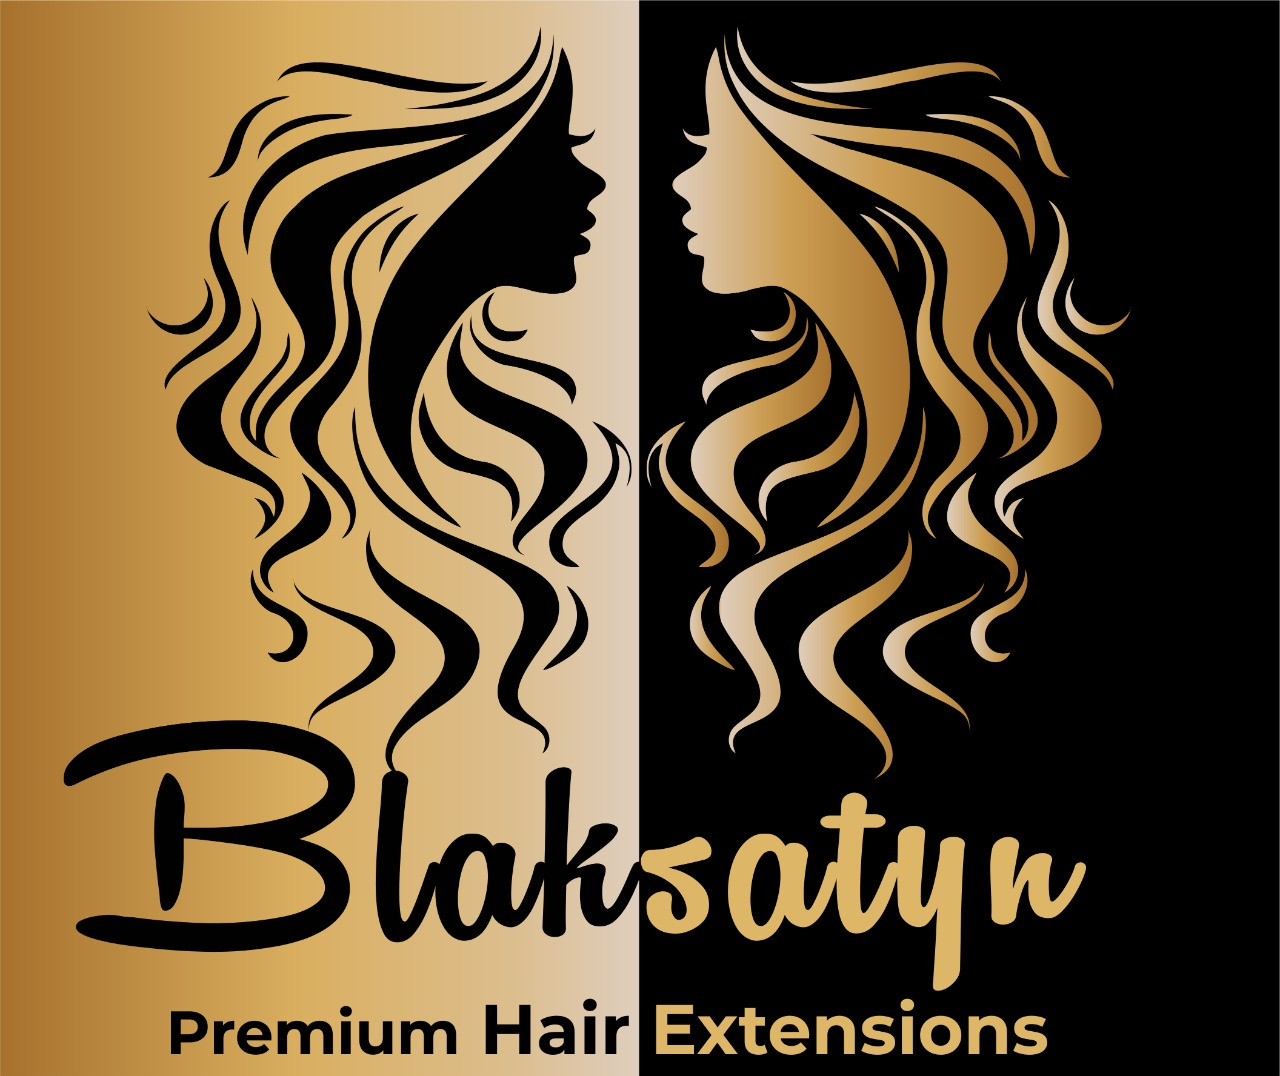 Blaksatyn banner for hair extensions wigs closures frontals clip-on Virgin human hair